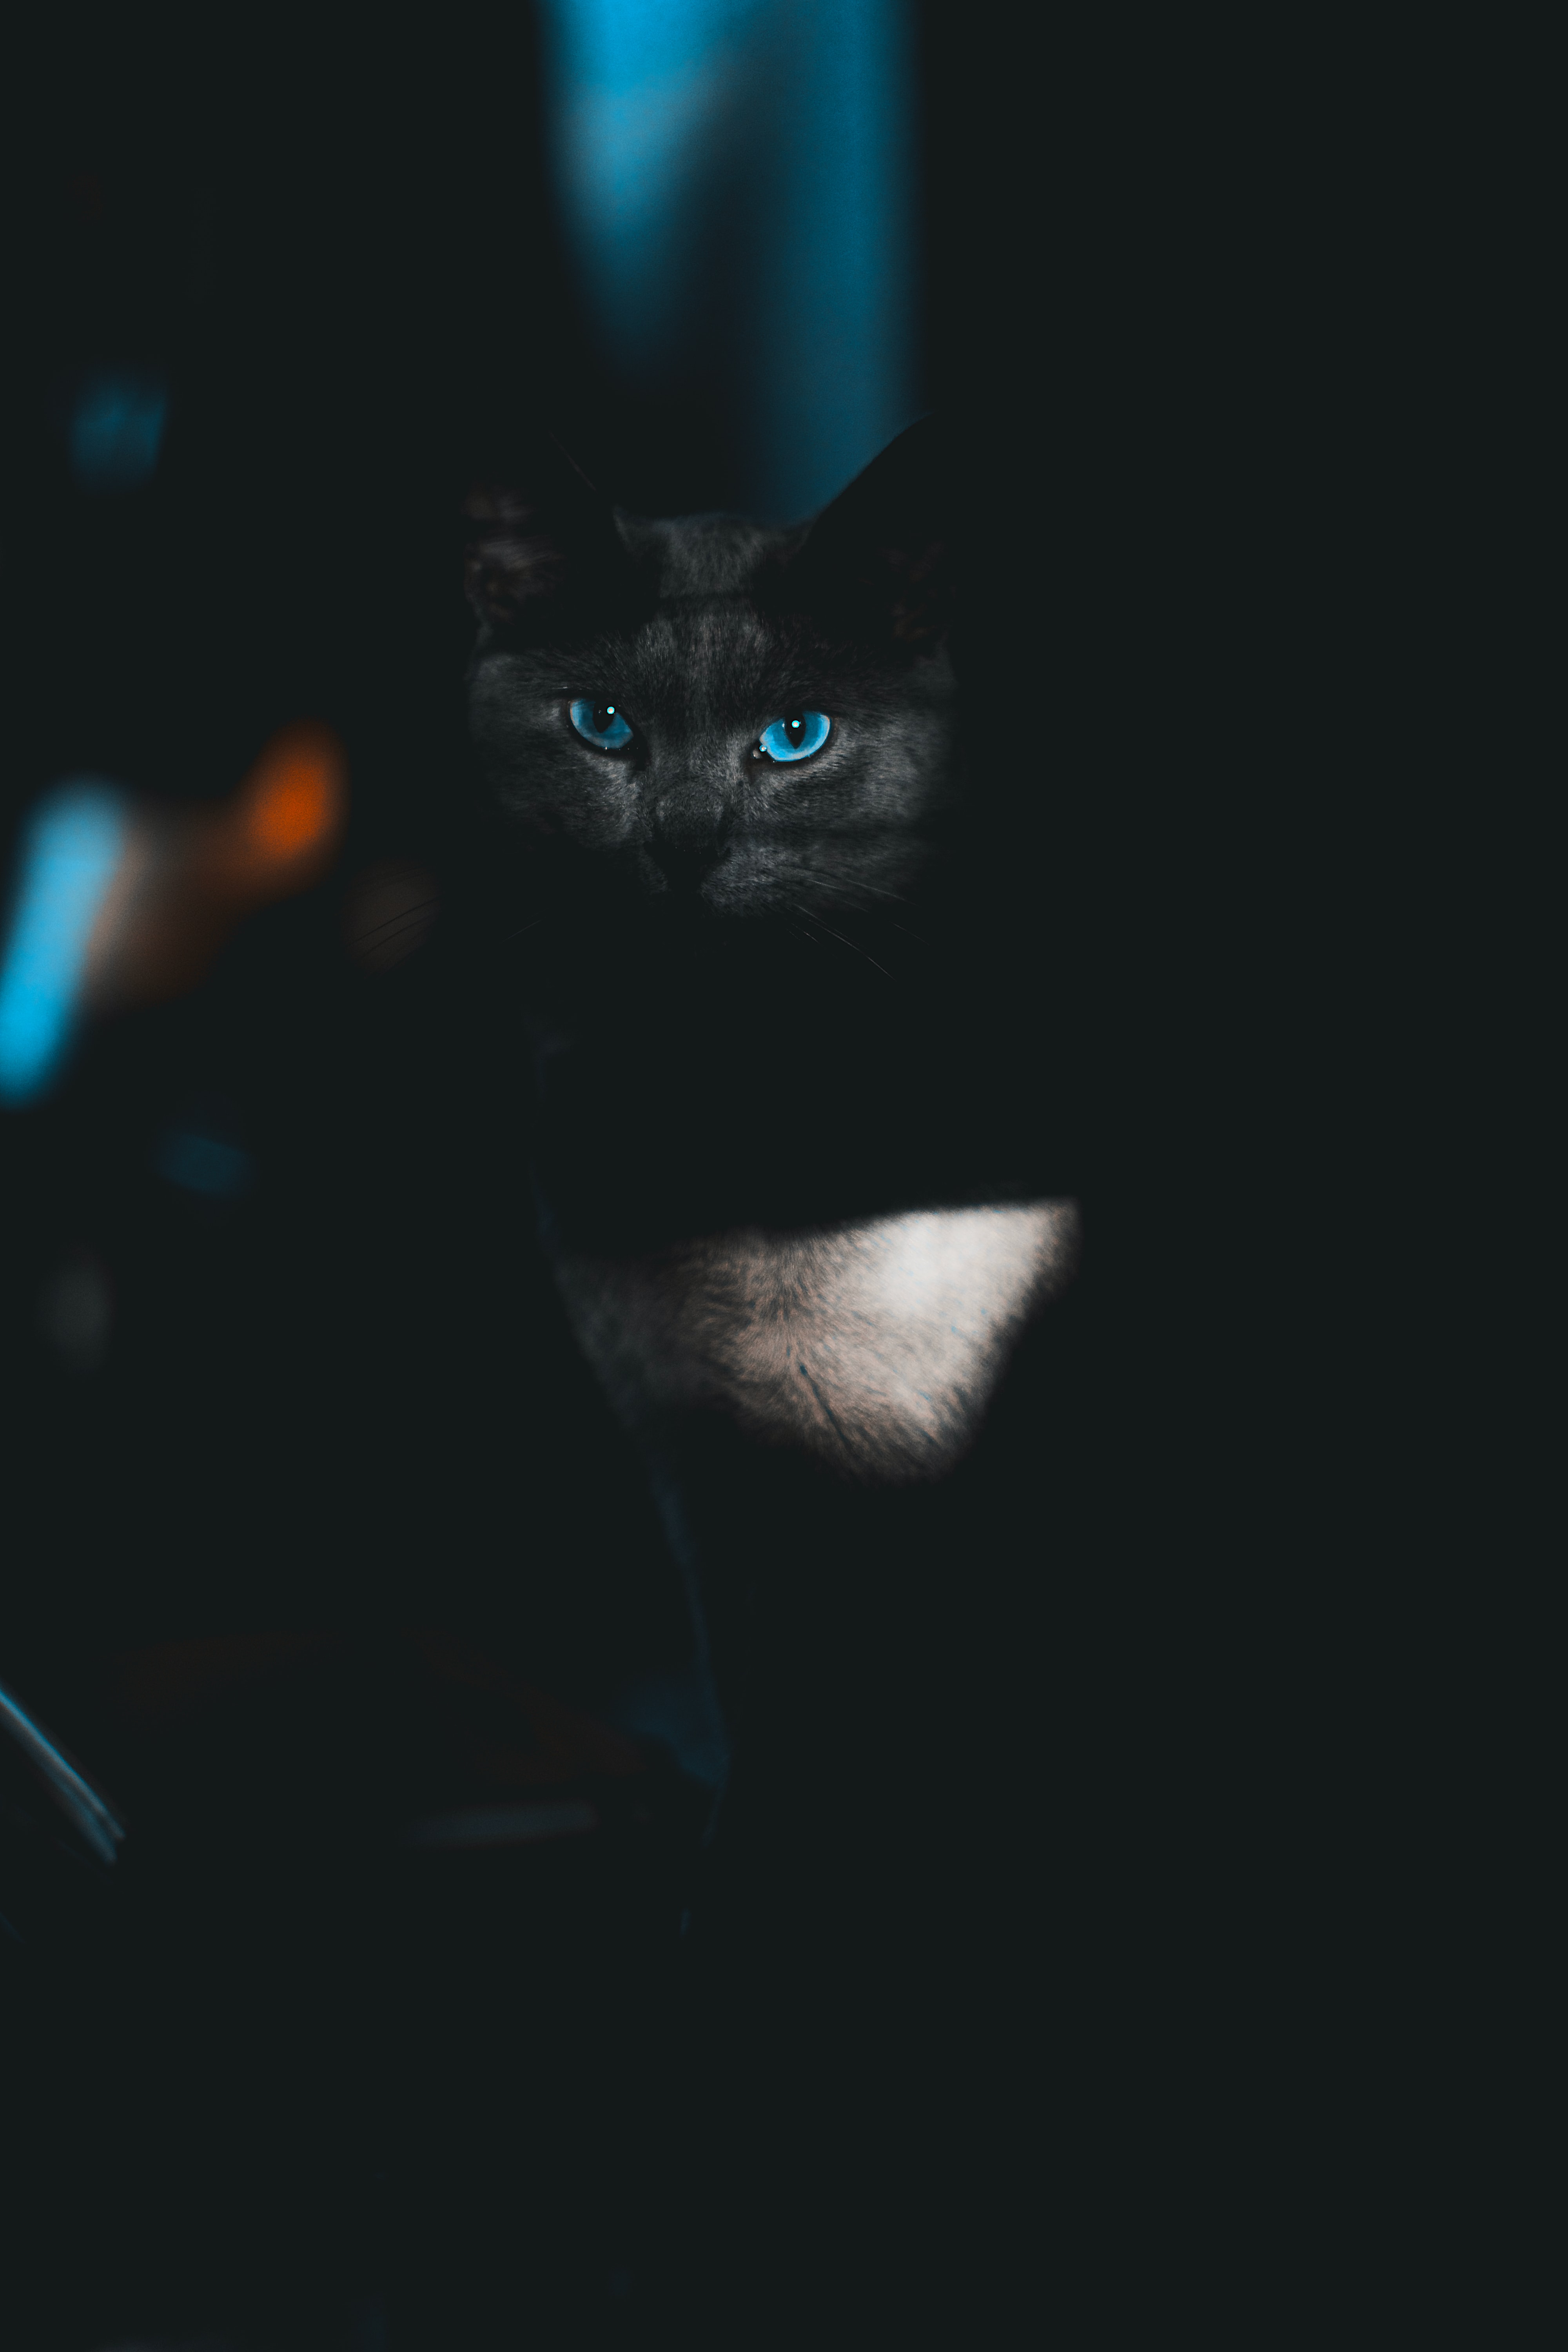 79686 download wallpaper Animals, Cat, Sight, Opinion, Pet, Dark, Eyes screensavers and pictures for free